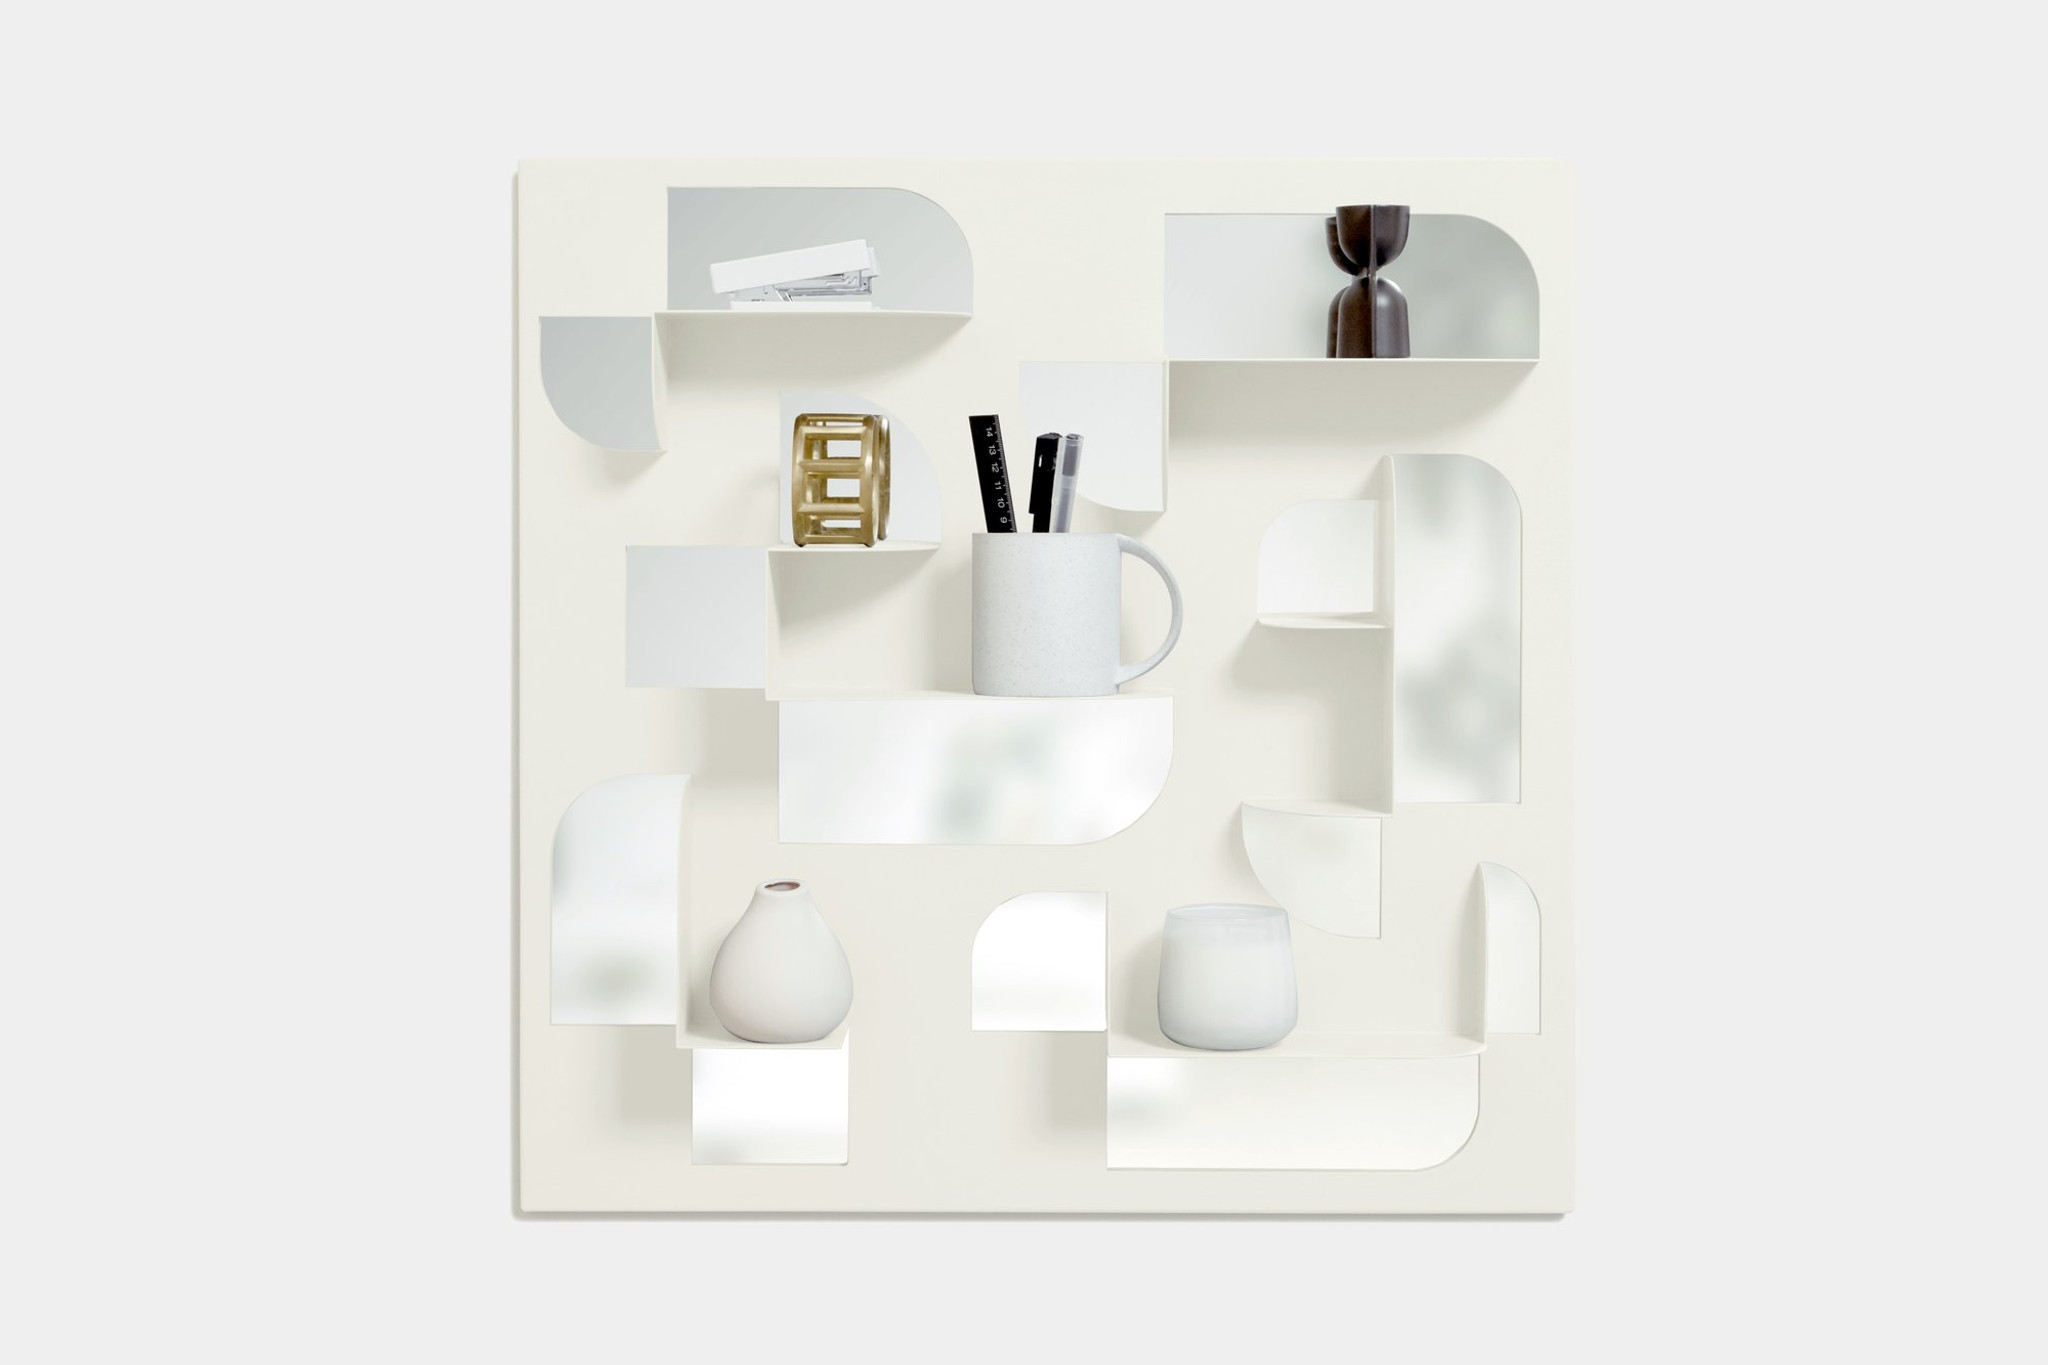 umbra BEND MIRROR WITH SHELVES wall hanging square mirror organizer